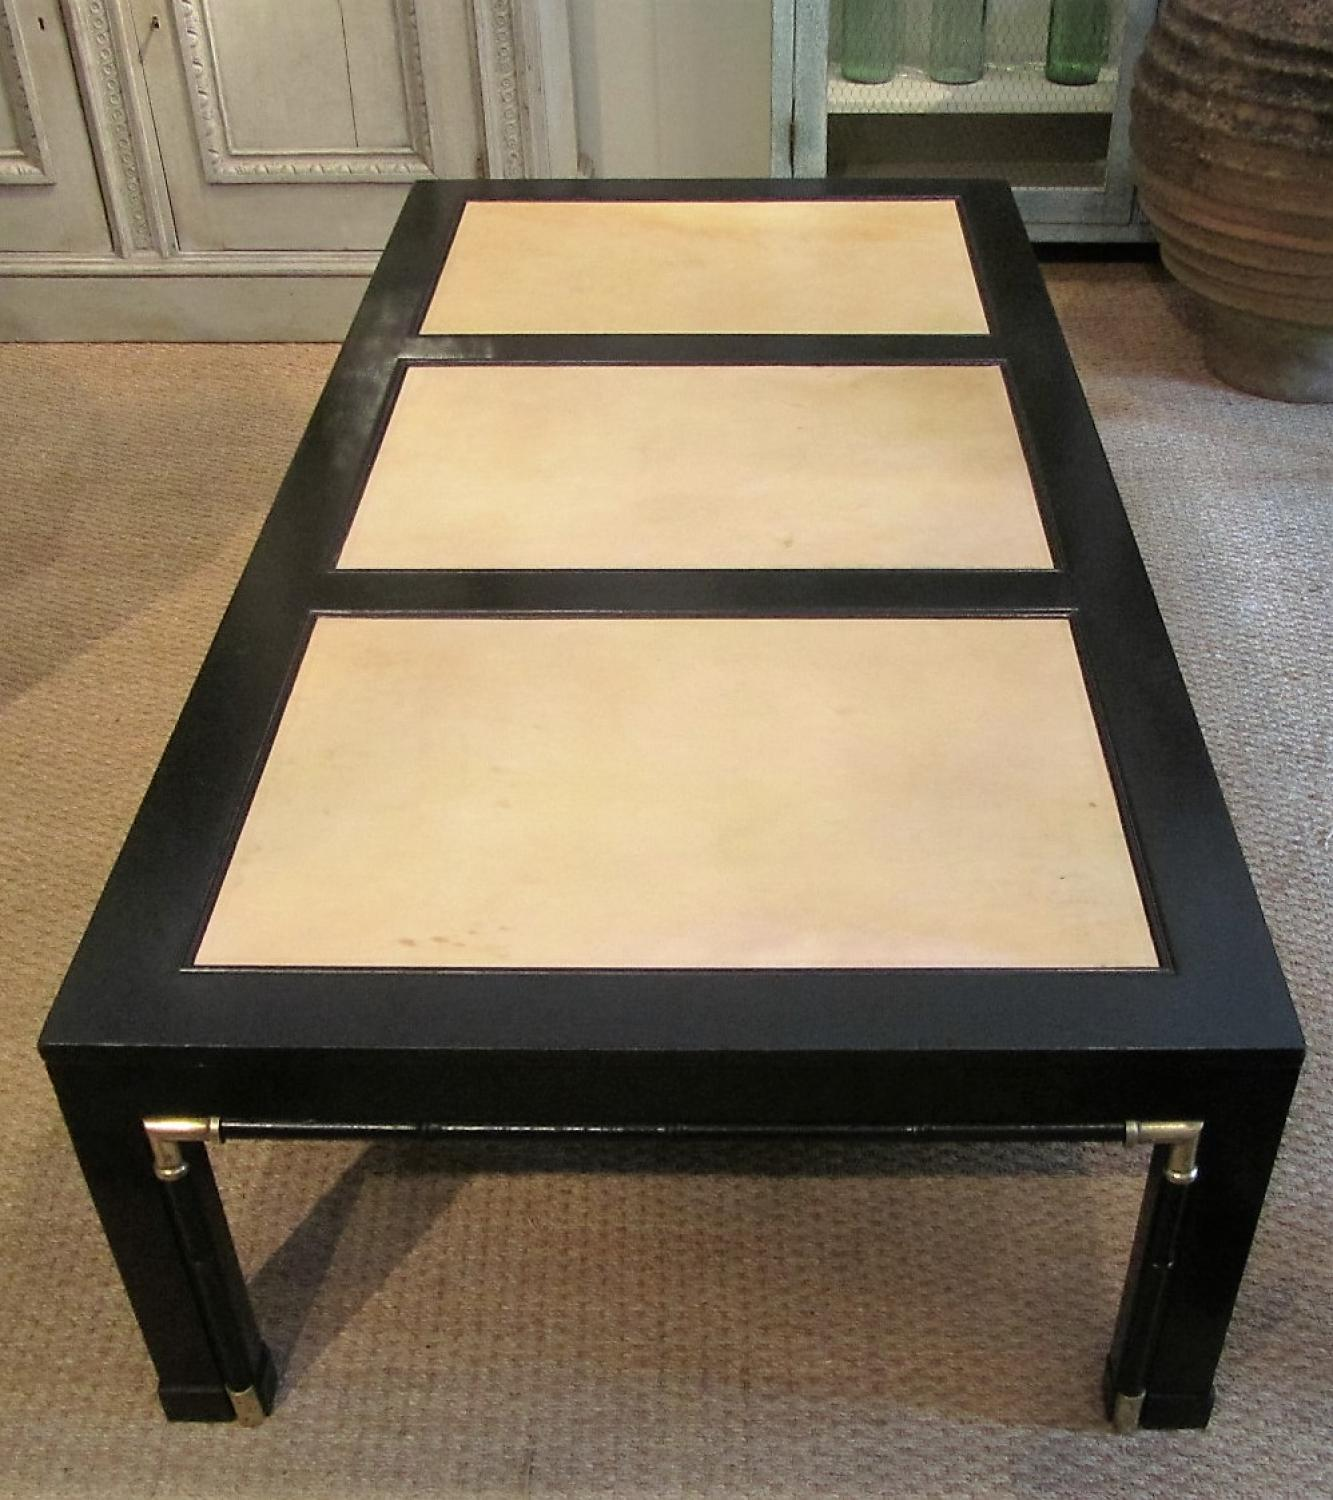 A black lacquer coffee table